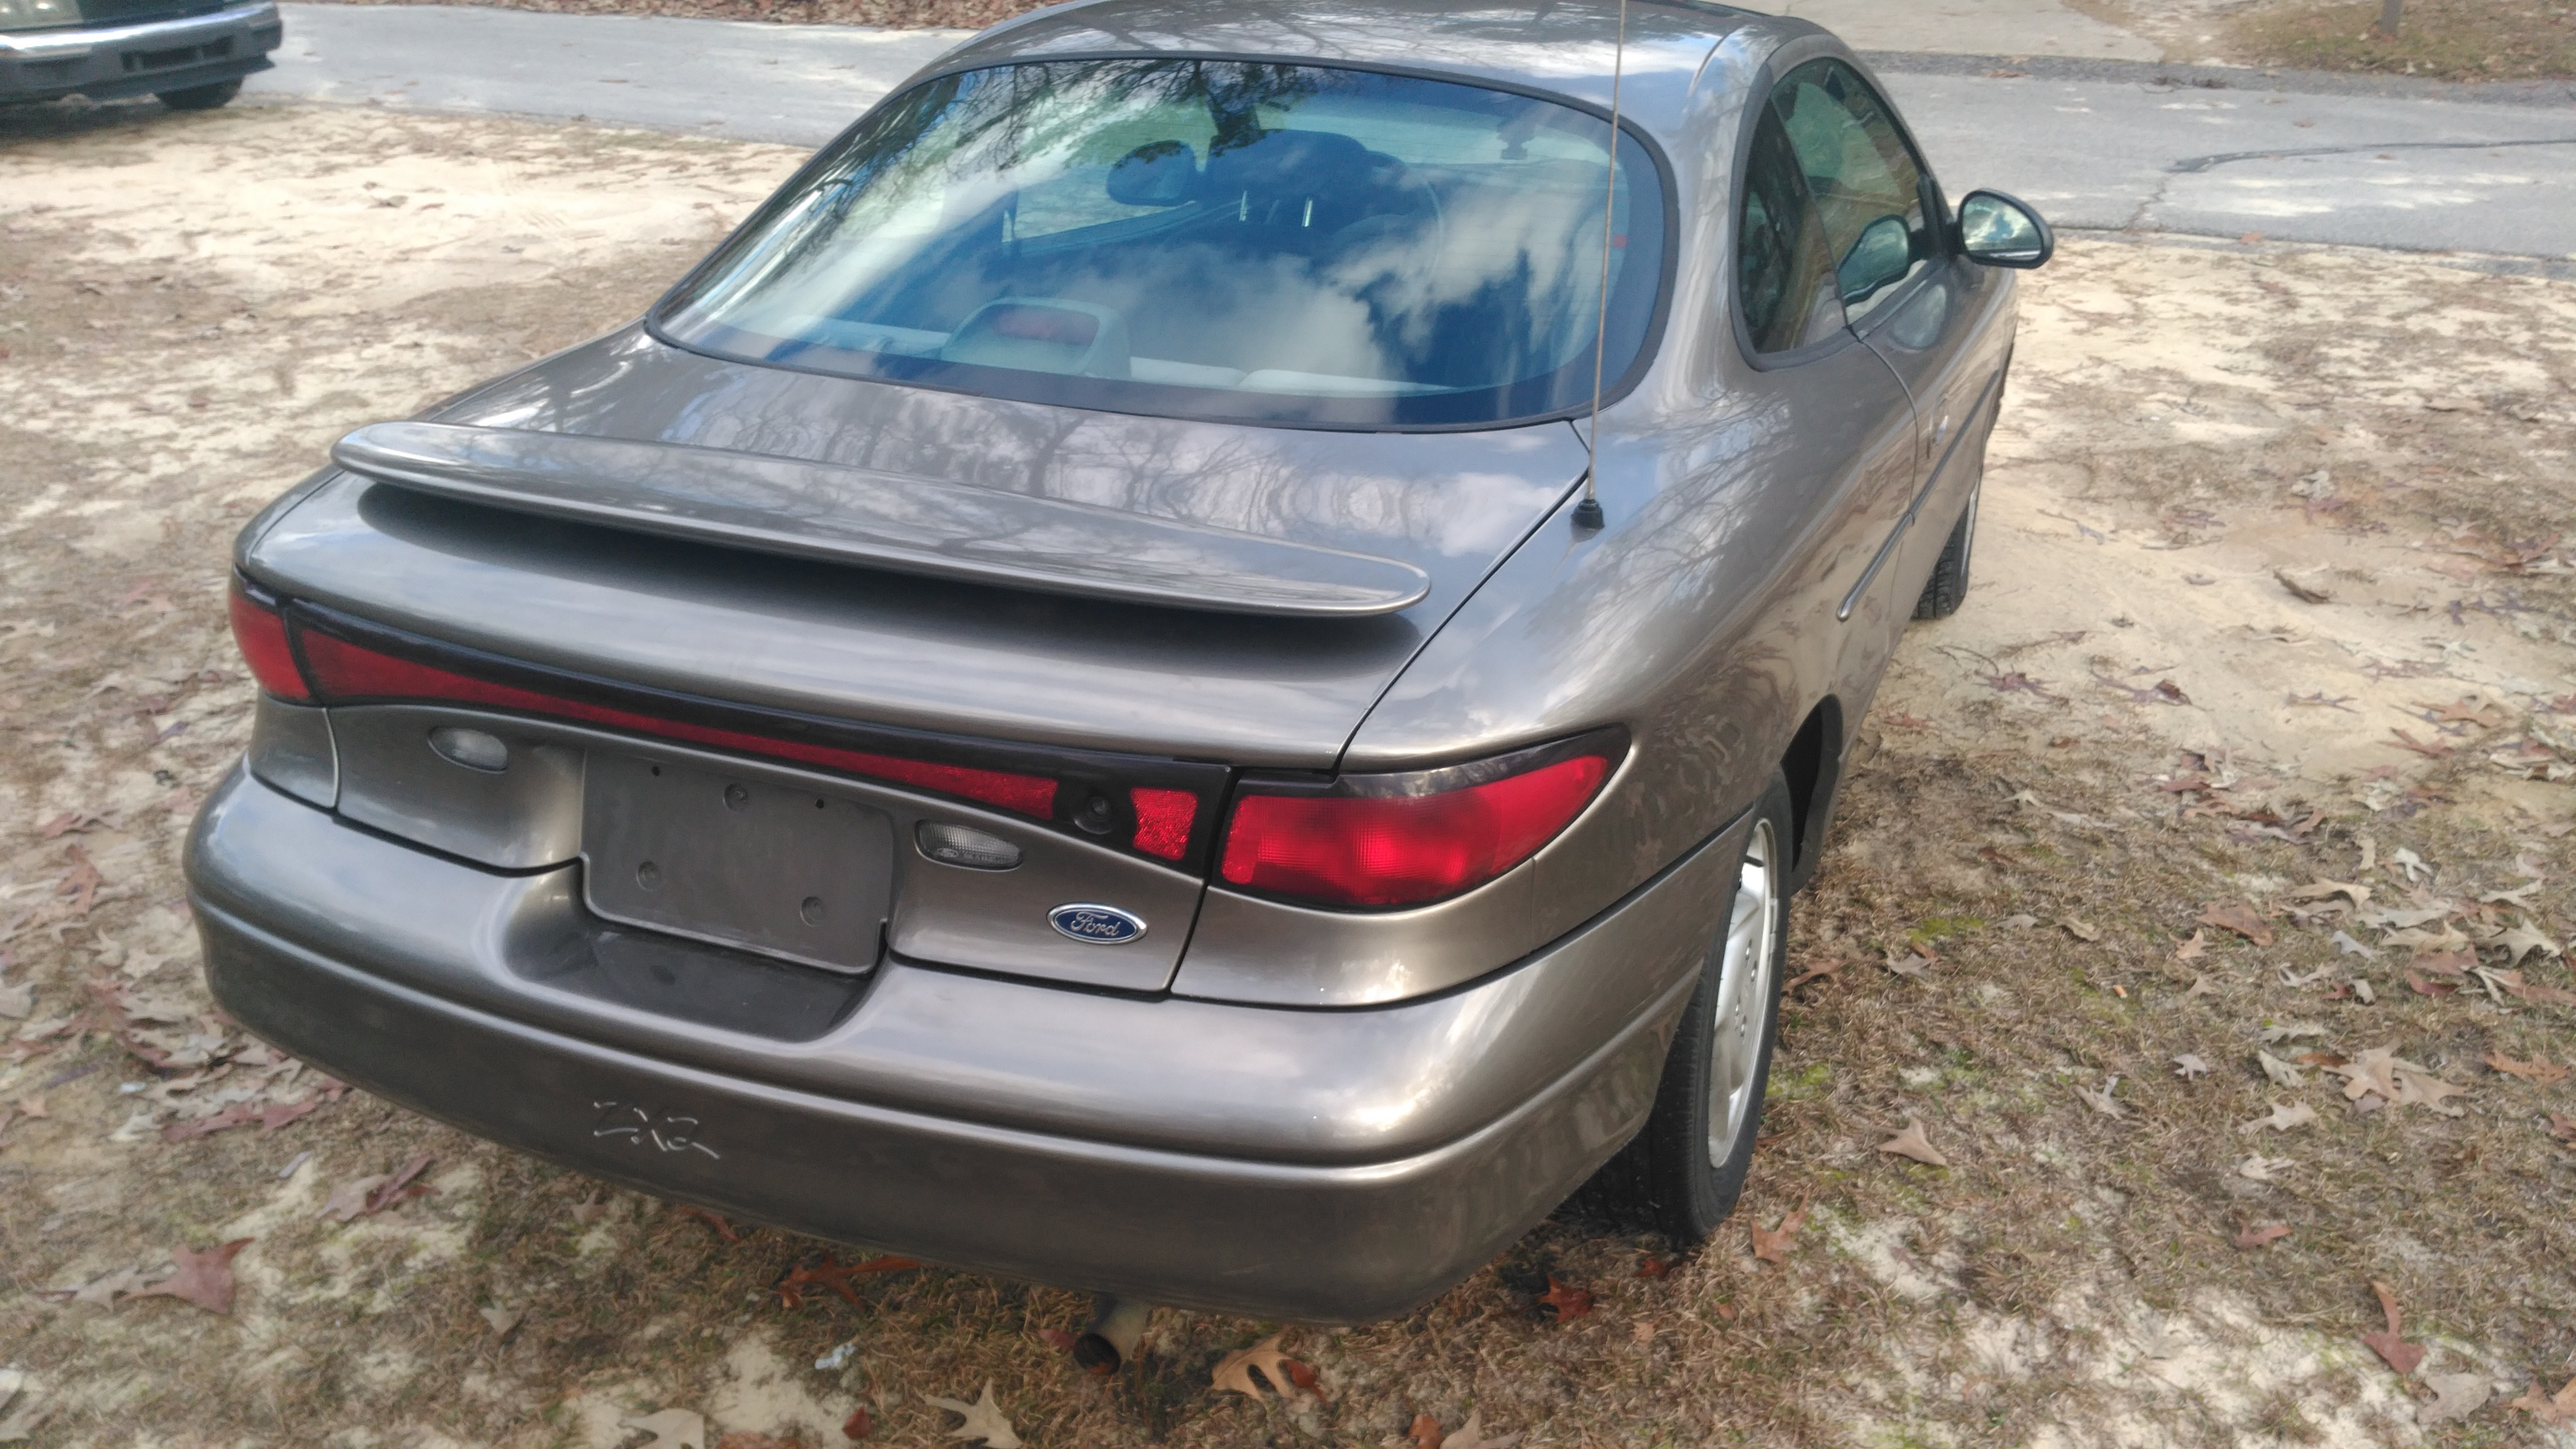 Cash For Cars Dayton Oh Sell Your Junk Car The